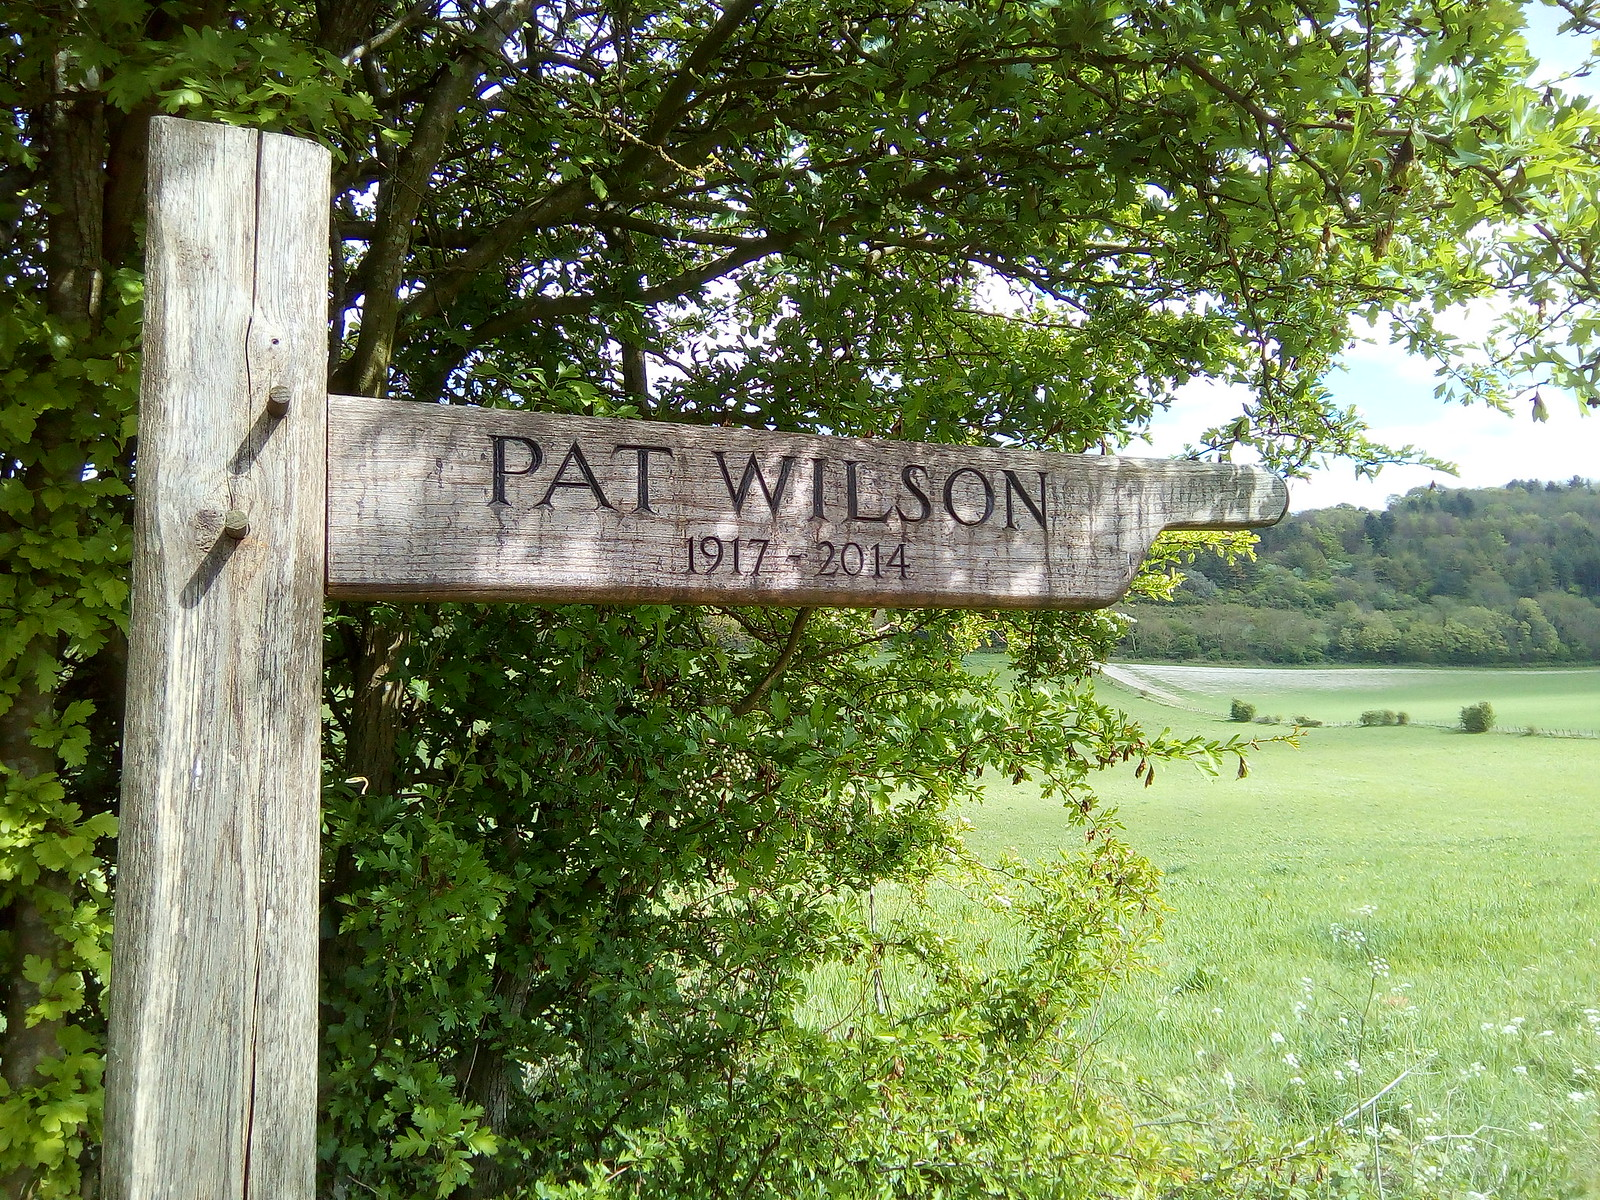 Pat What a great epitaph